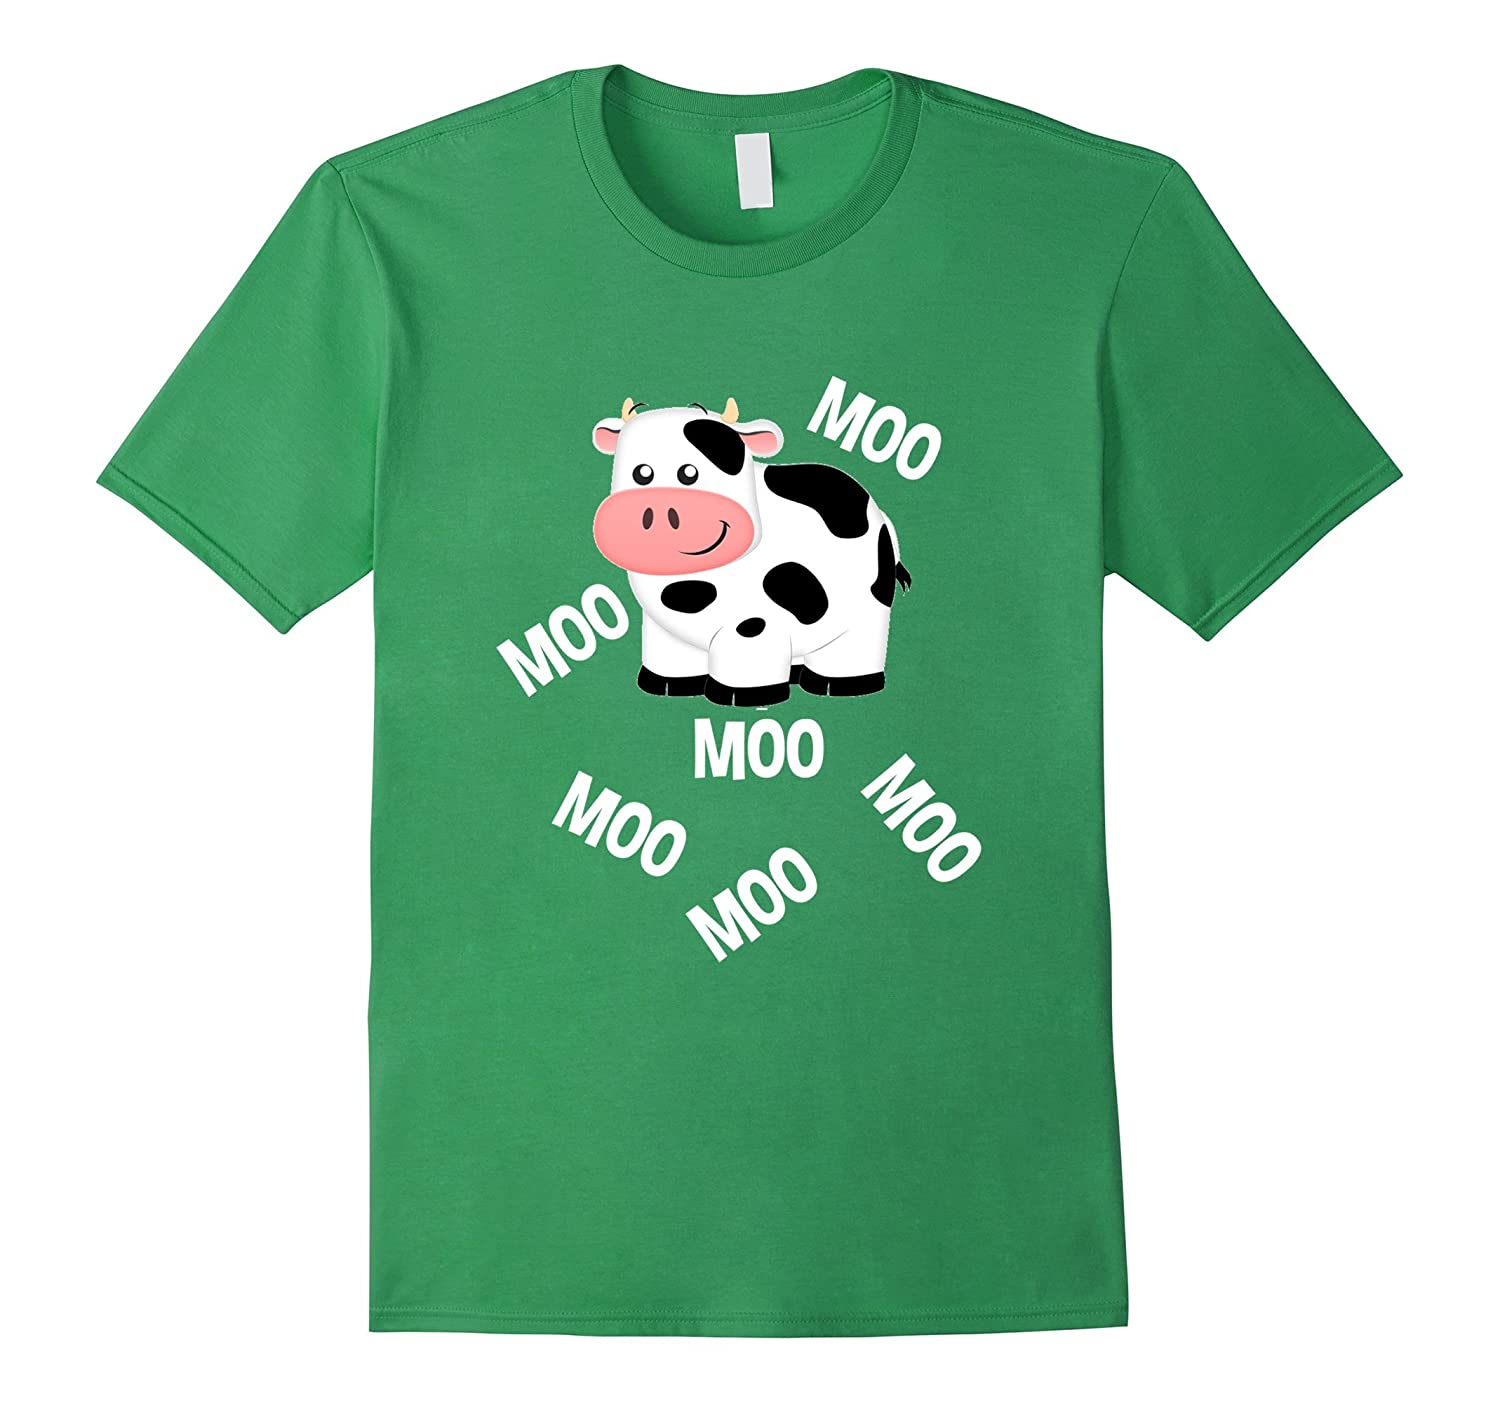 farm animals cow goes moo t shirt toddlers little boy